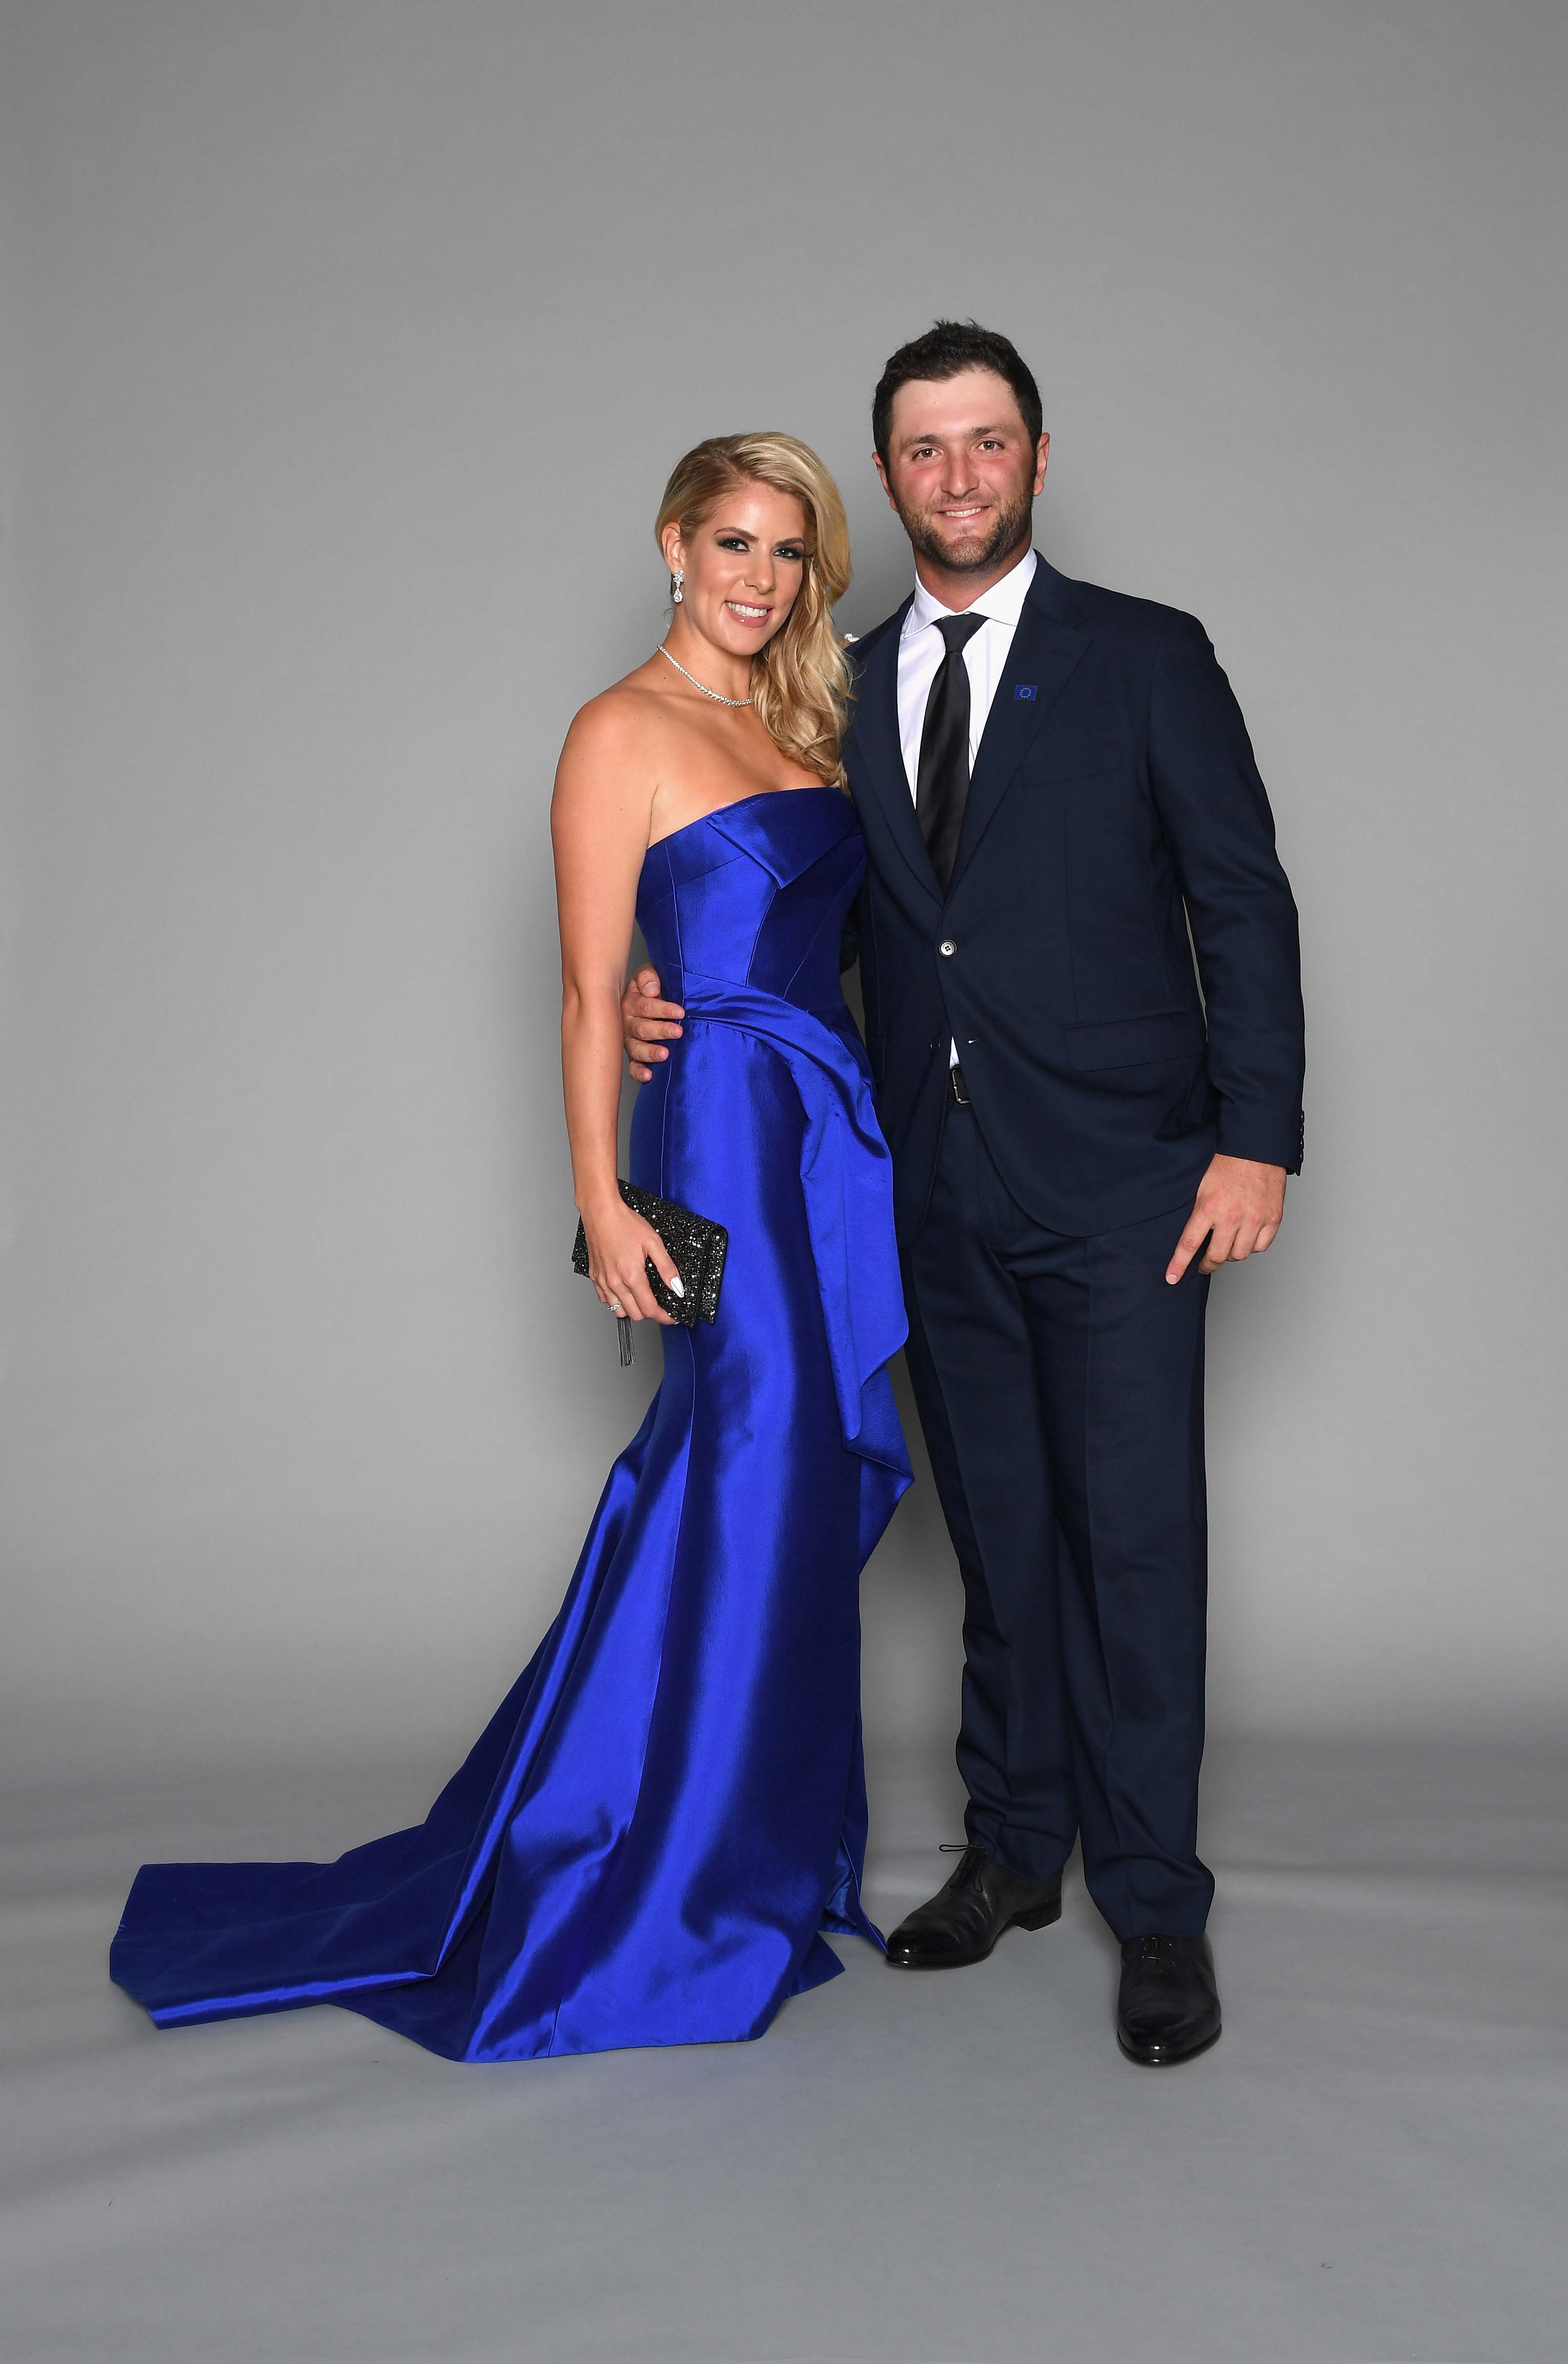 Jon Rahm and with his wife Kelley Cahill